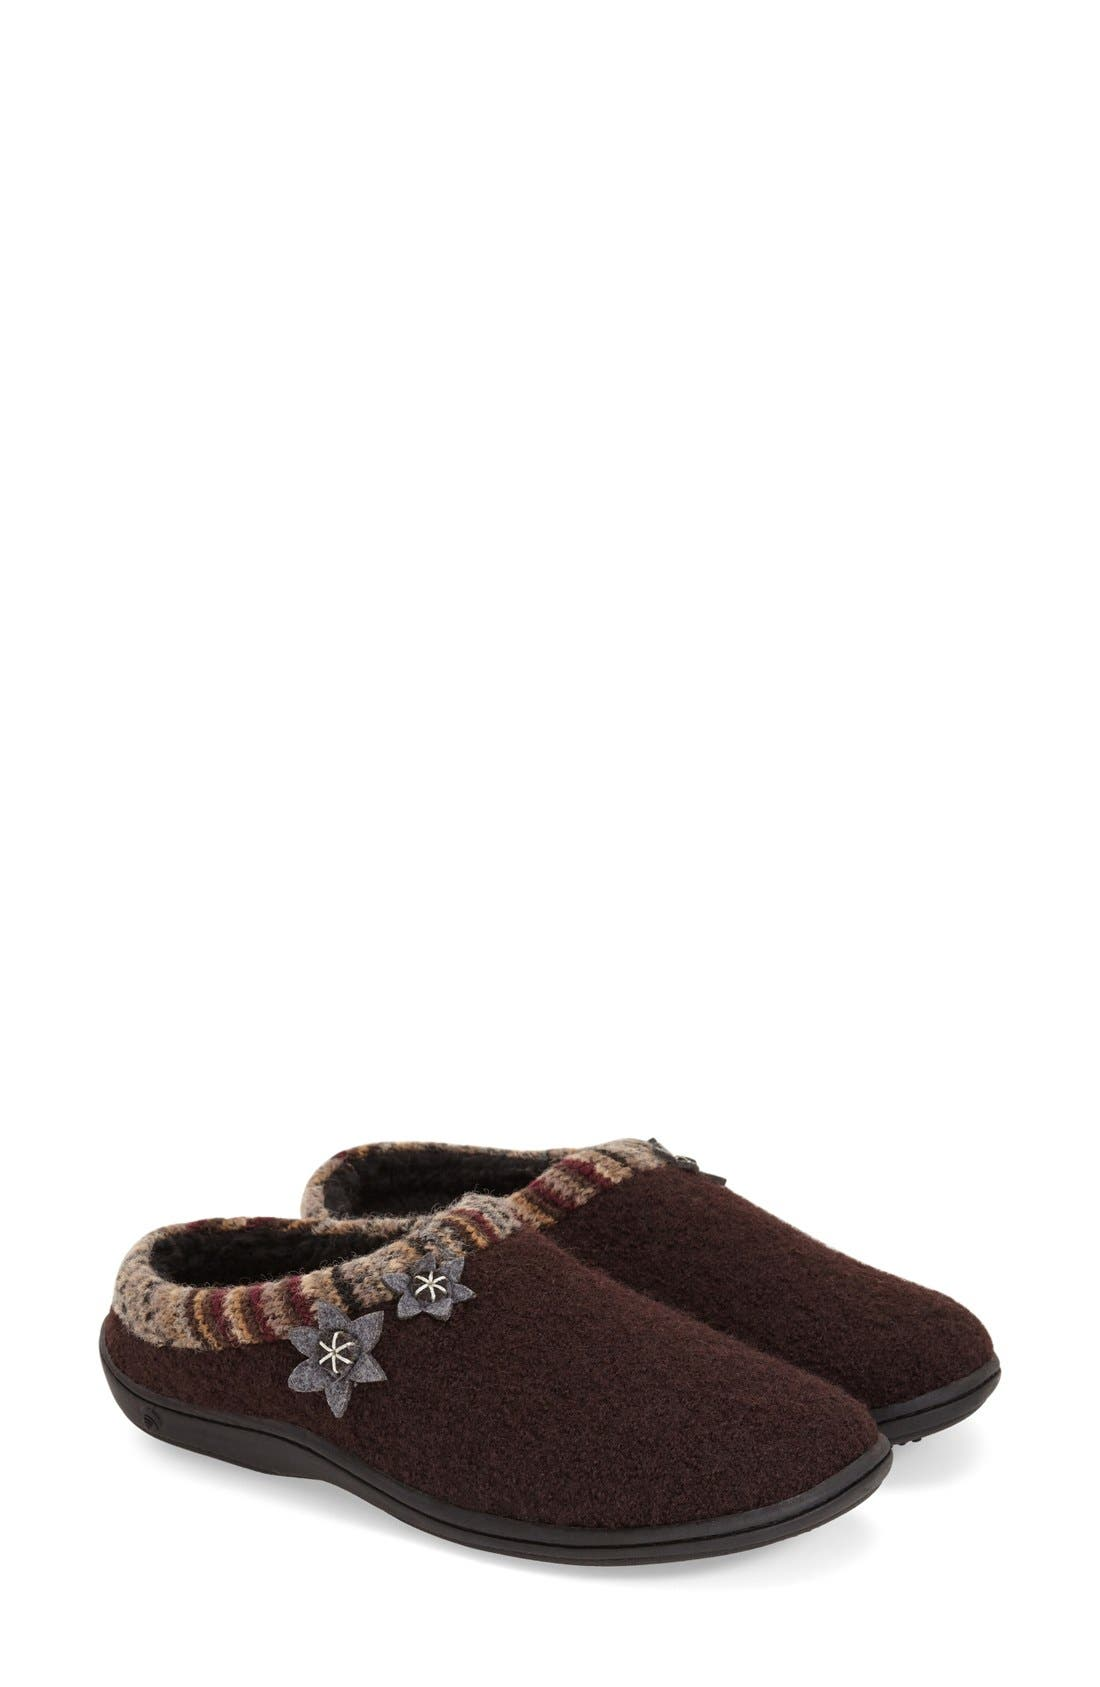 ,                             'Dara' Slipper,                             Main thumbnail 25, color,                             201